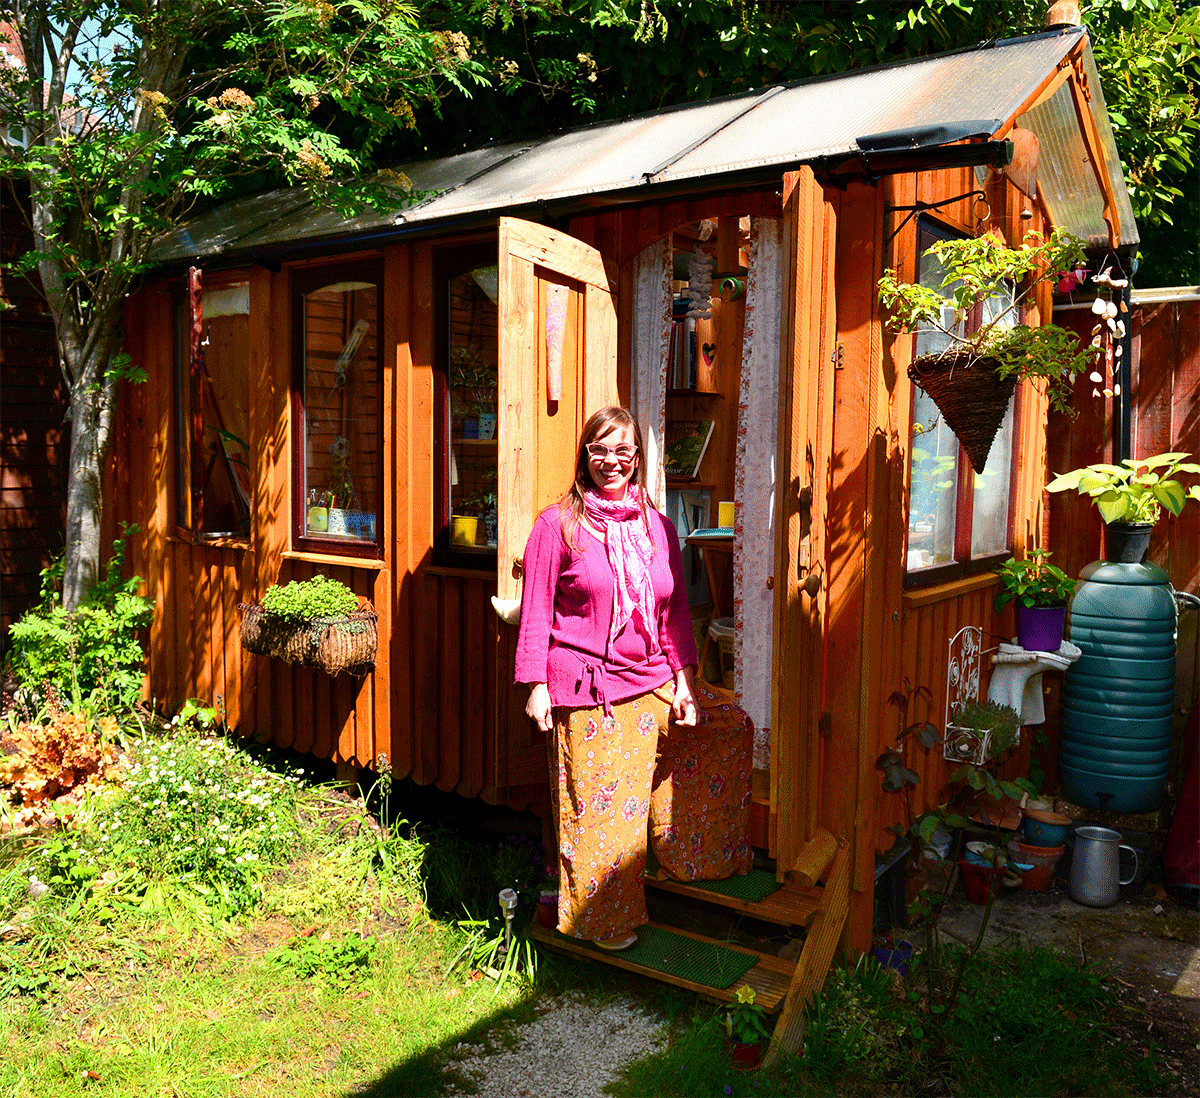 My own art studio - I built this little fairy tale studio with my partner as in my tiny house there was no space for art making, we used mainly pallets, and we just bough tons of screws, skylight roof and cladding for the inside. I can work there all the year around, as I have electricity, light and wifi. It's filled with light and dreams! ~ photo courtesy IW County Press.